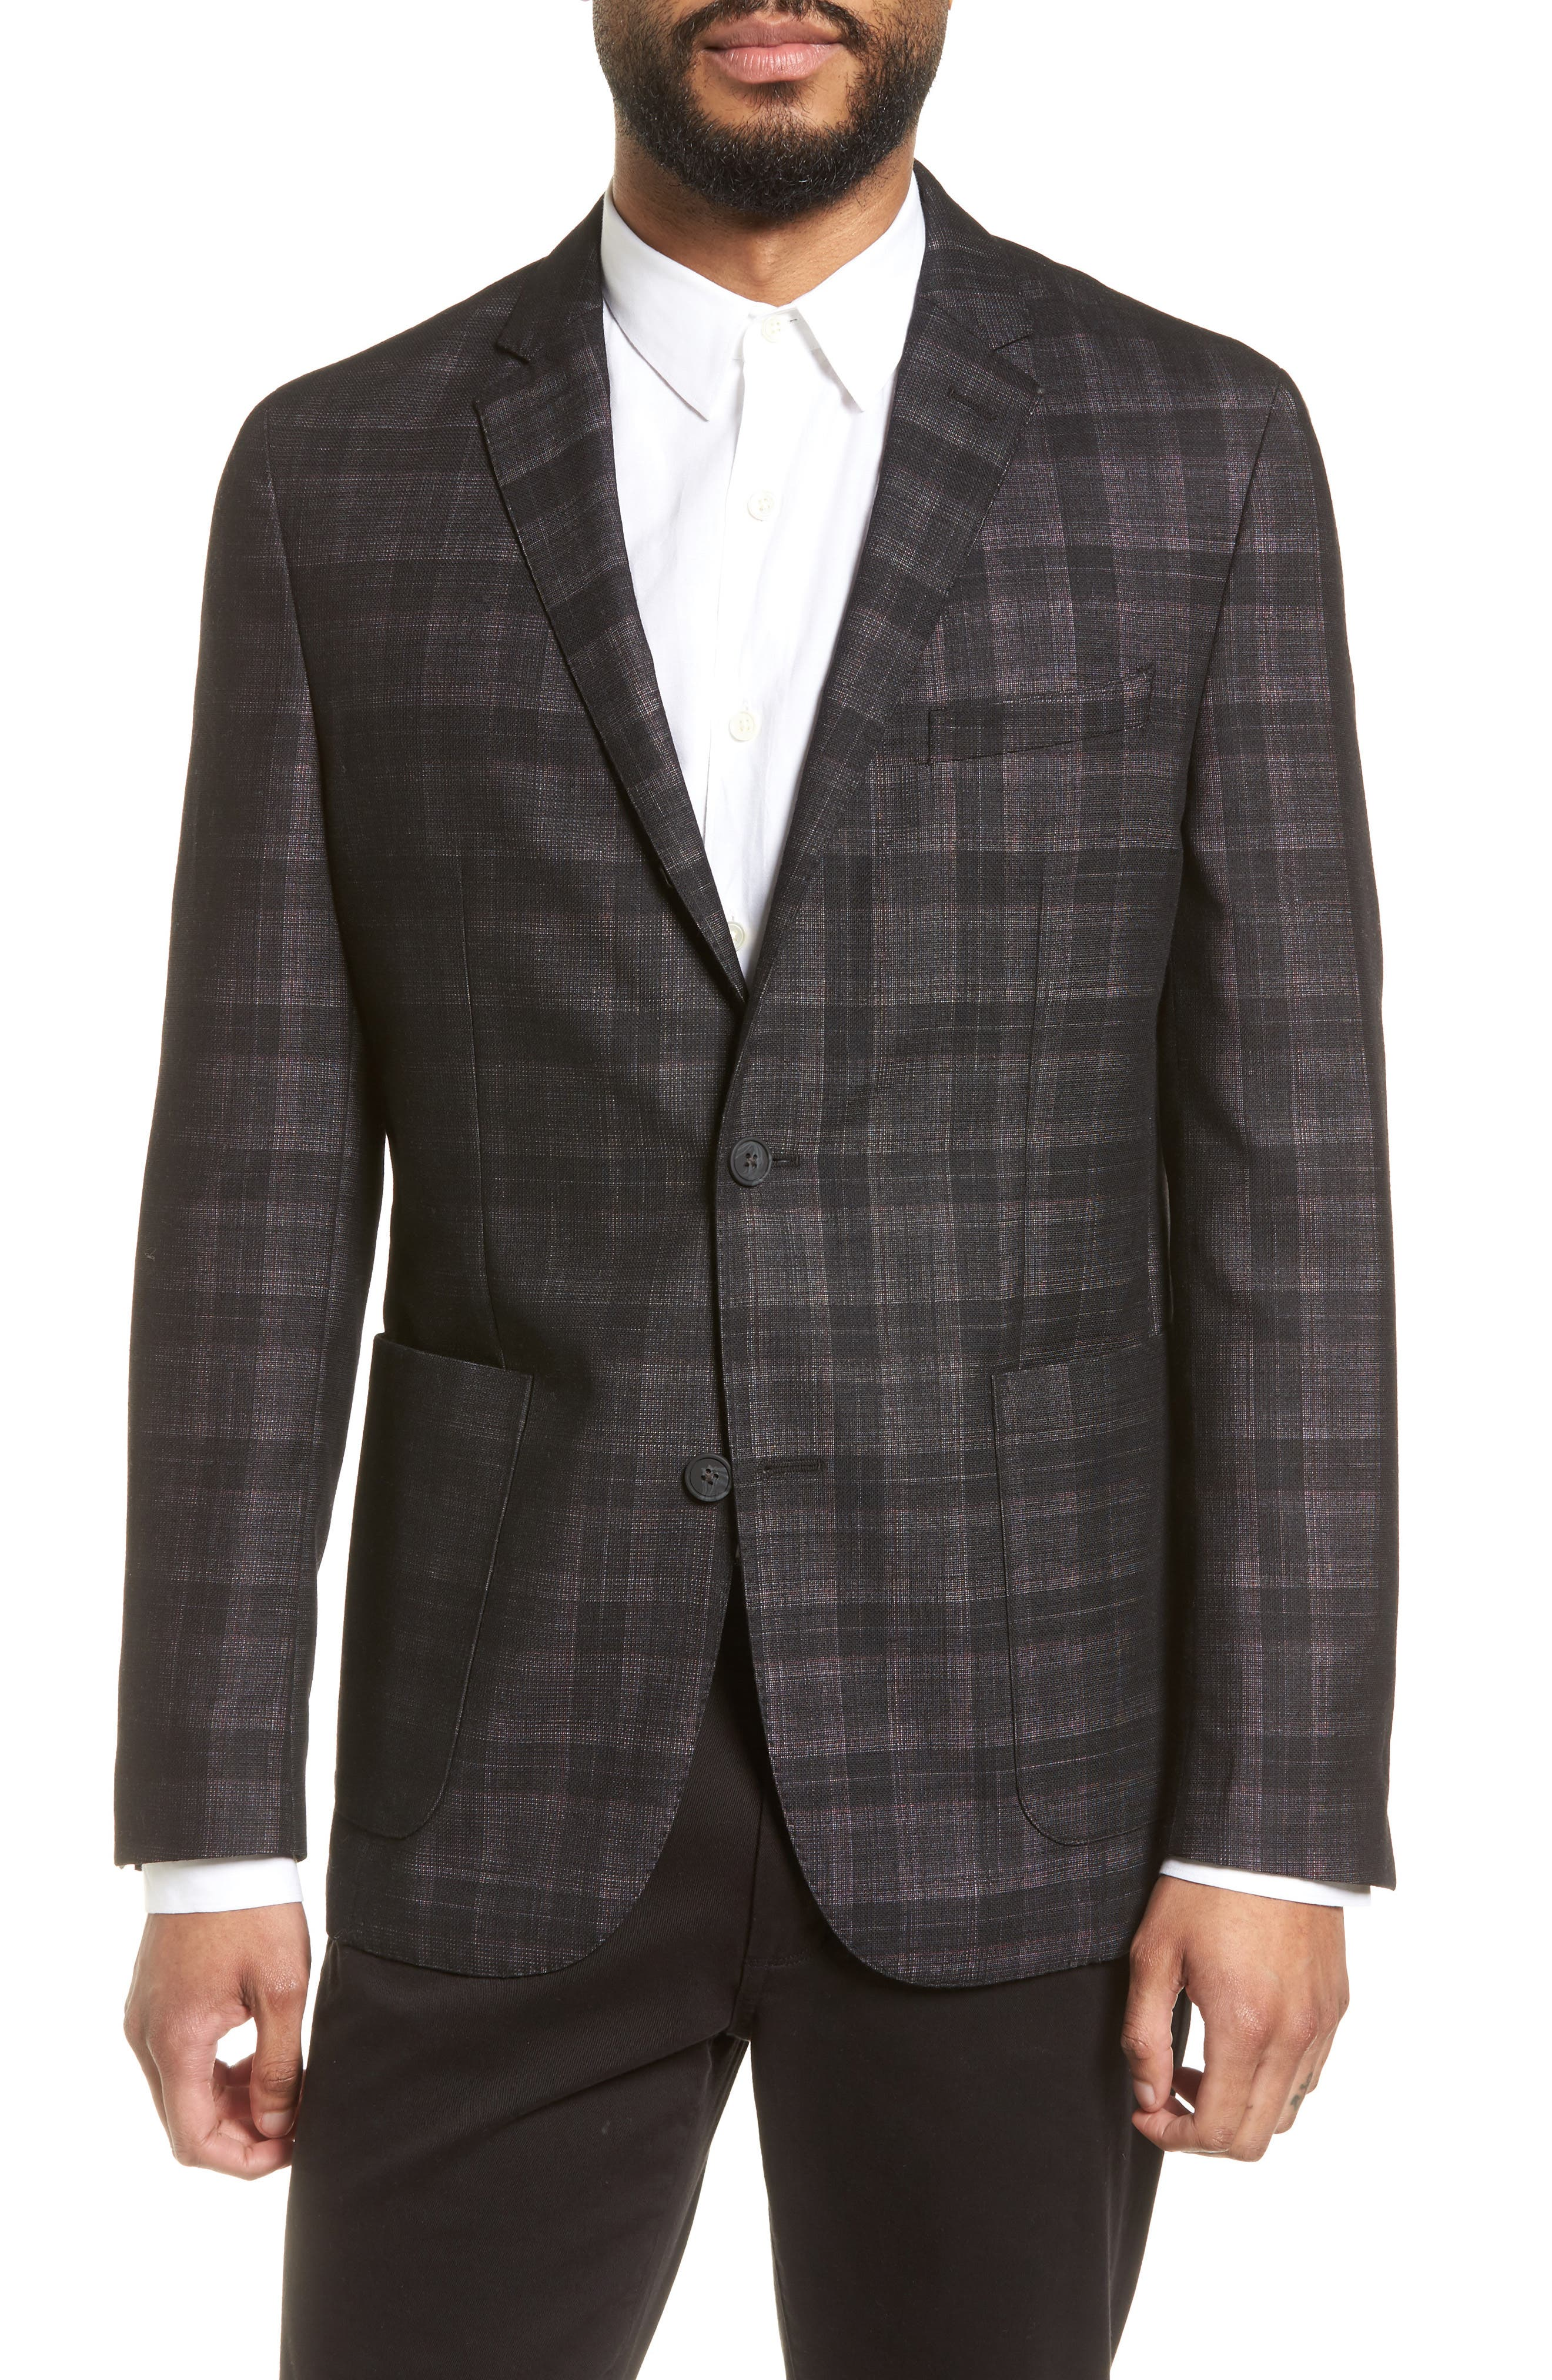 Delaria Plaid Wool Blend Jacket,                             Main thumbnail 1, color,                             001